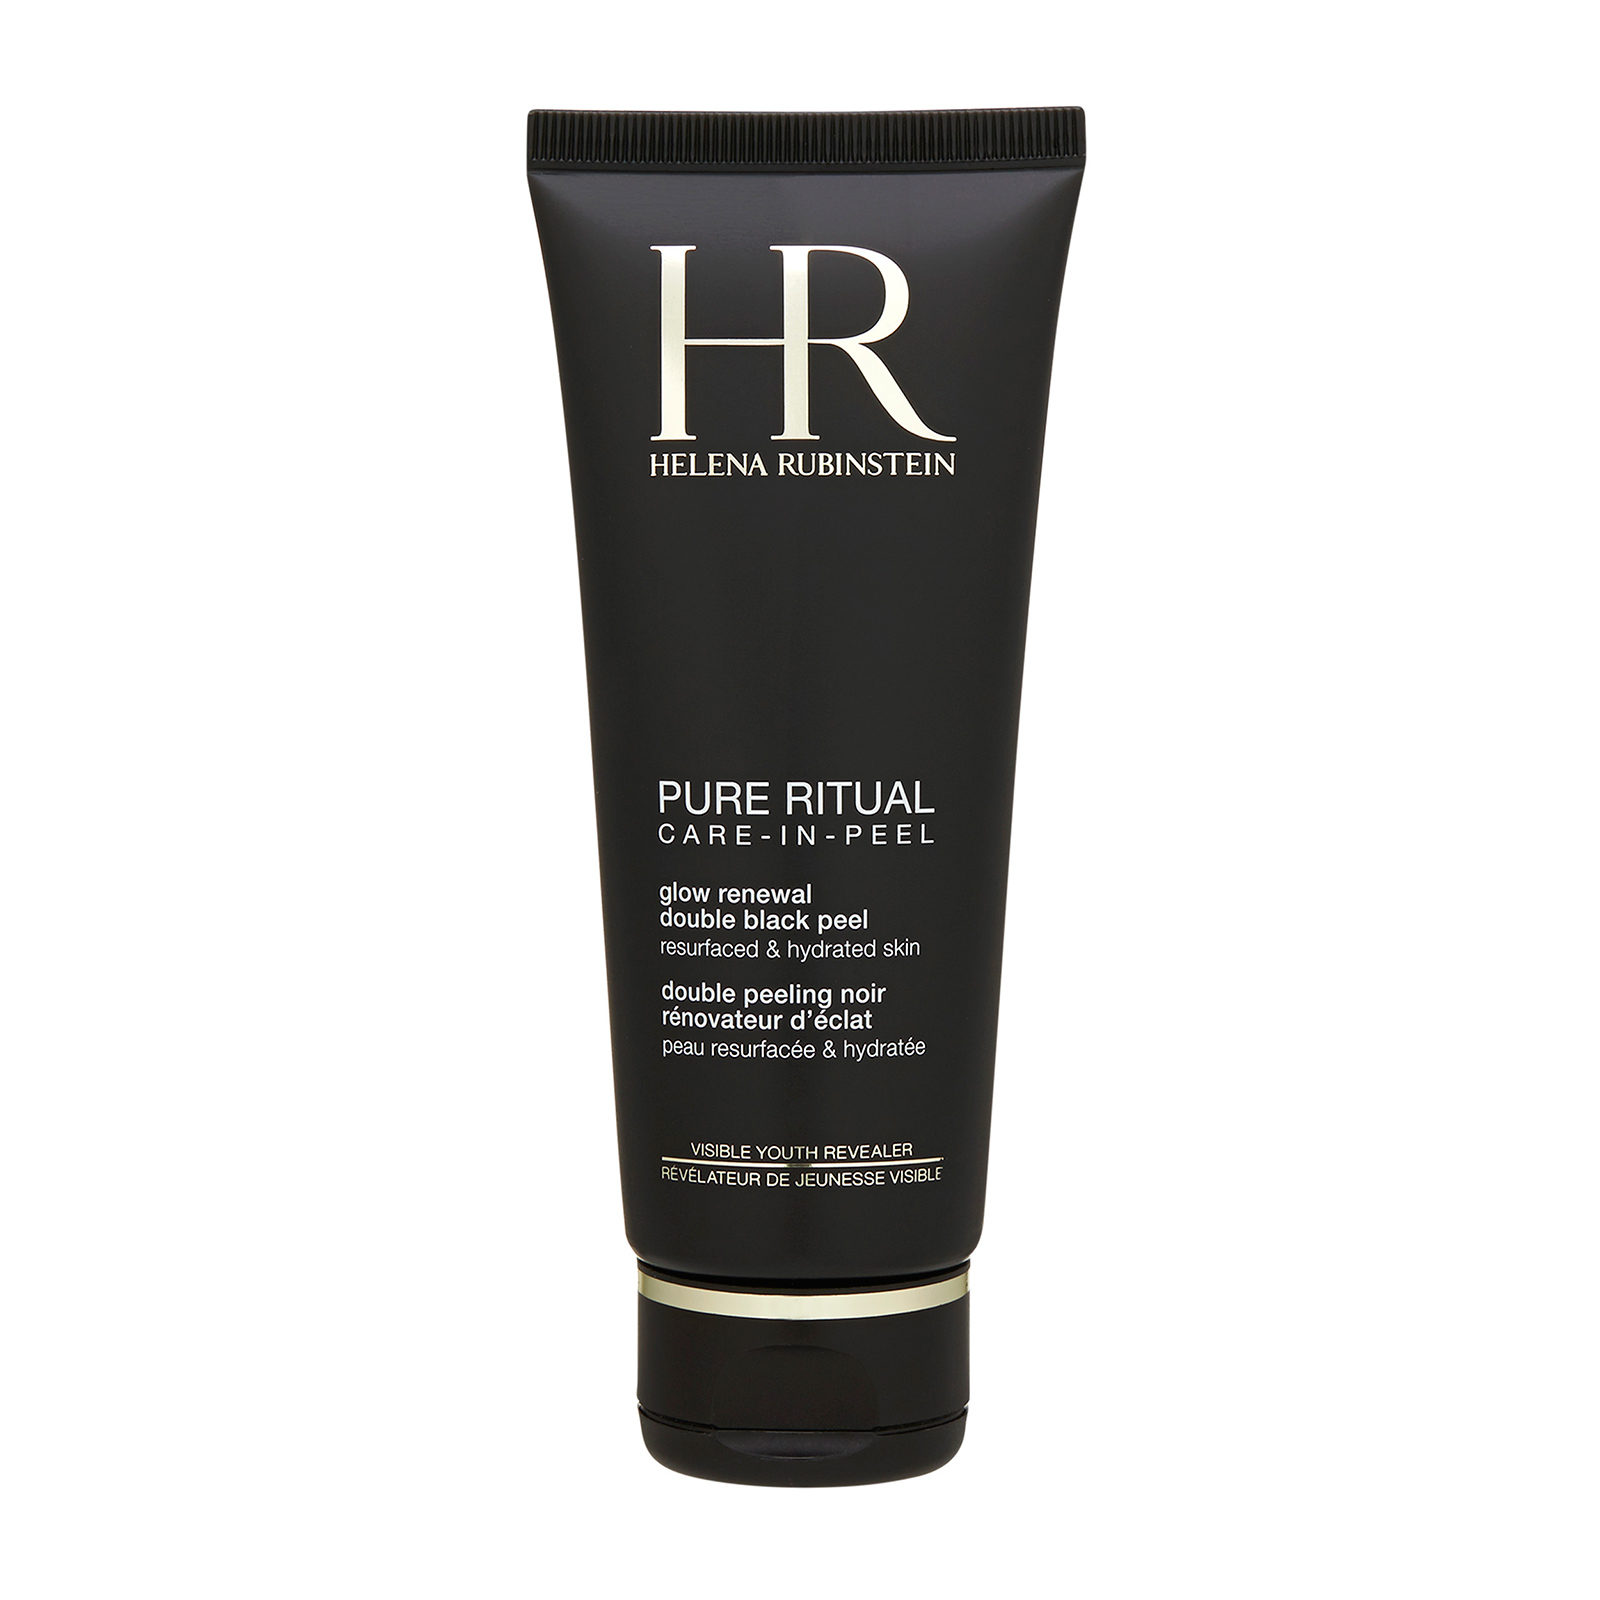 Helena Rubinstein Pure Ritual Care-In-Peel Glow Renewal Double Black Peel (For All Skin Types) 3.38oz, 100ml from Cosme-De.com